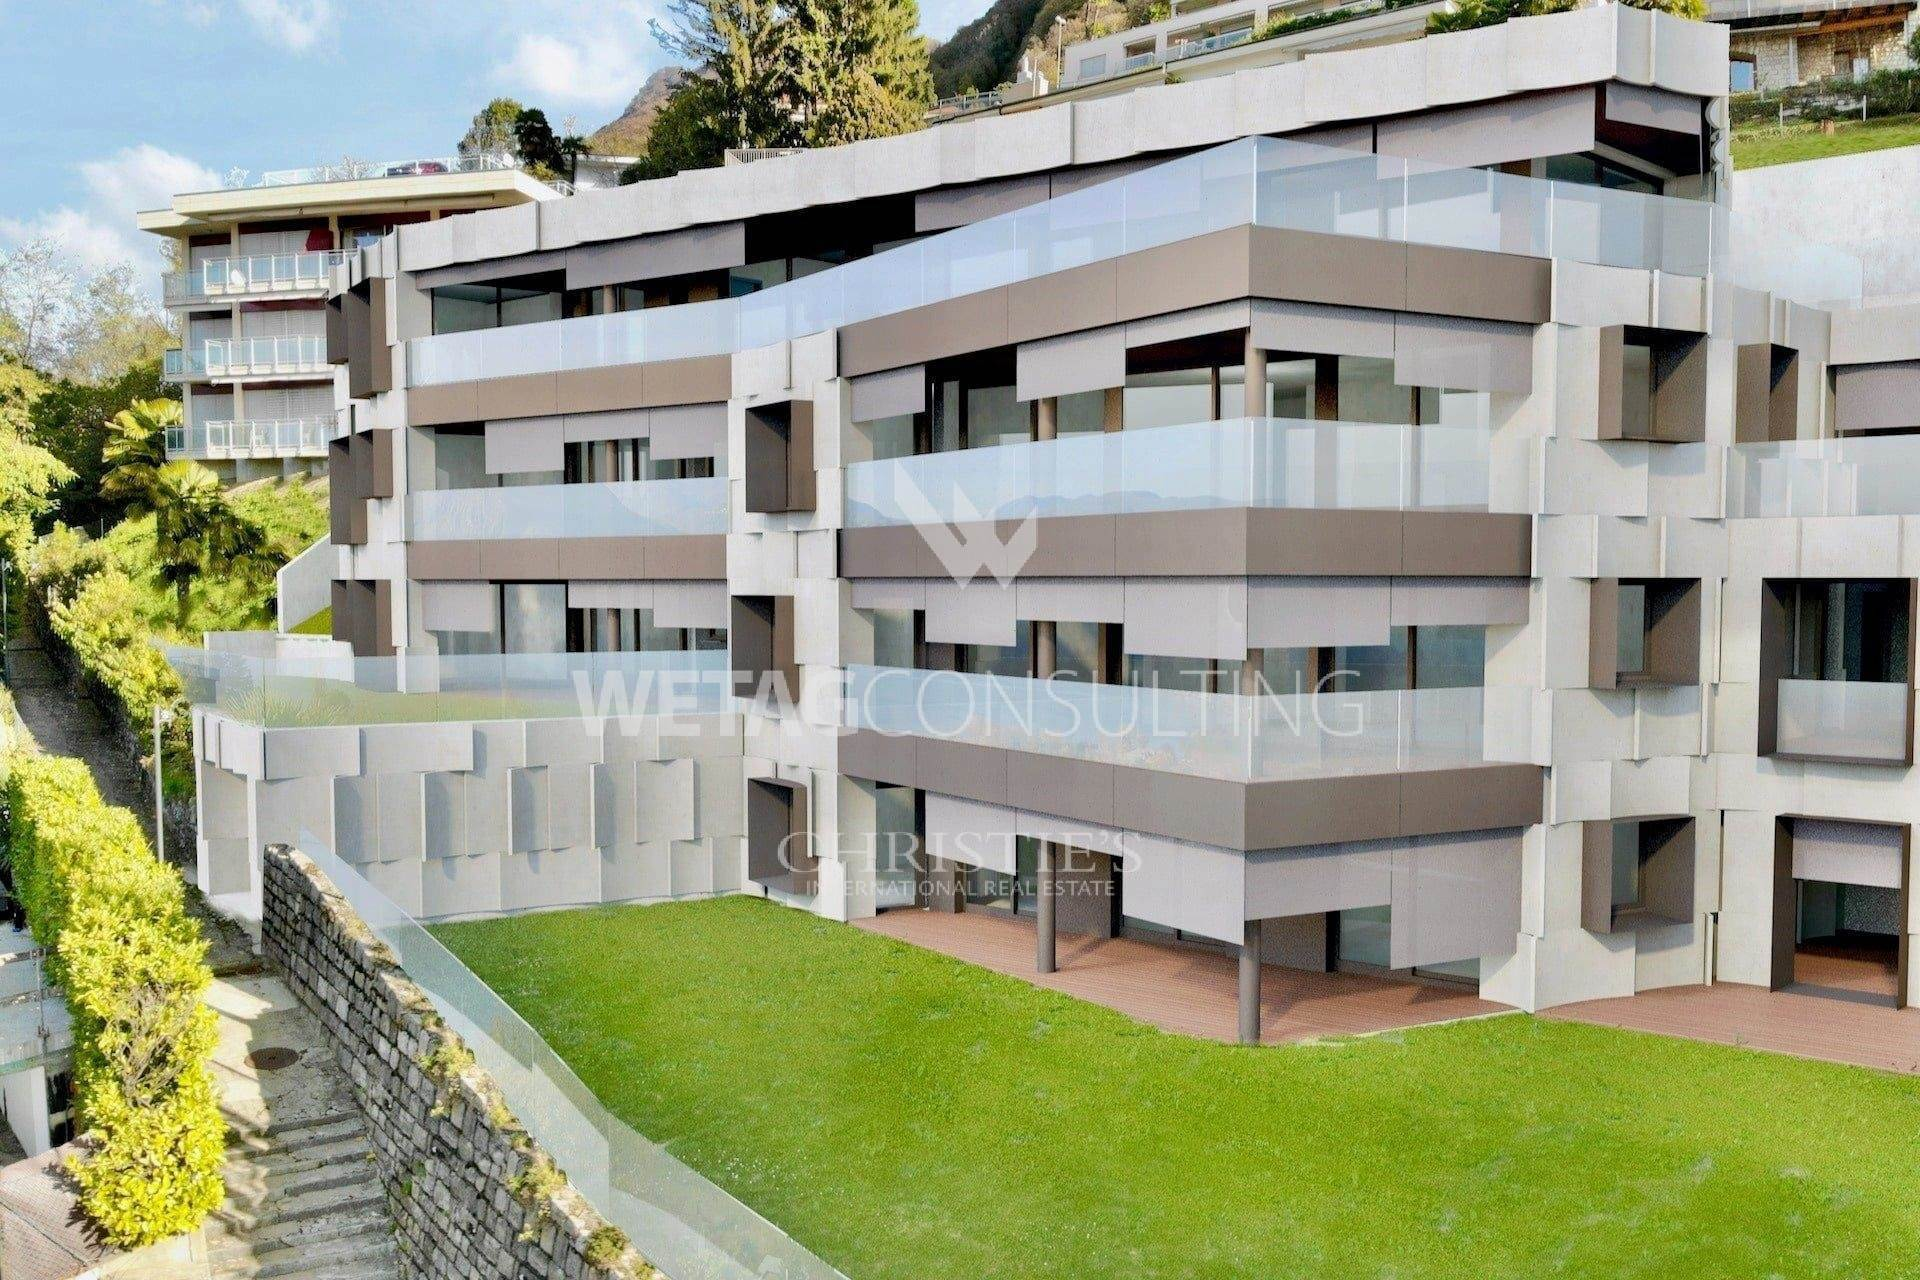 Апартаменты / Квартиры для того Продажа на Wonderful 4-bedrooms apartment for sale with garden and Lake Lugano view Aldesago, Тичино,6974 Швейцария